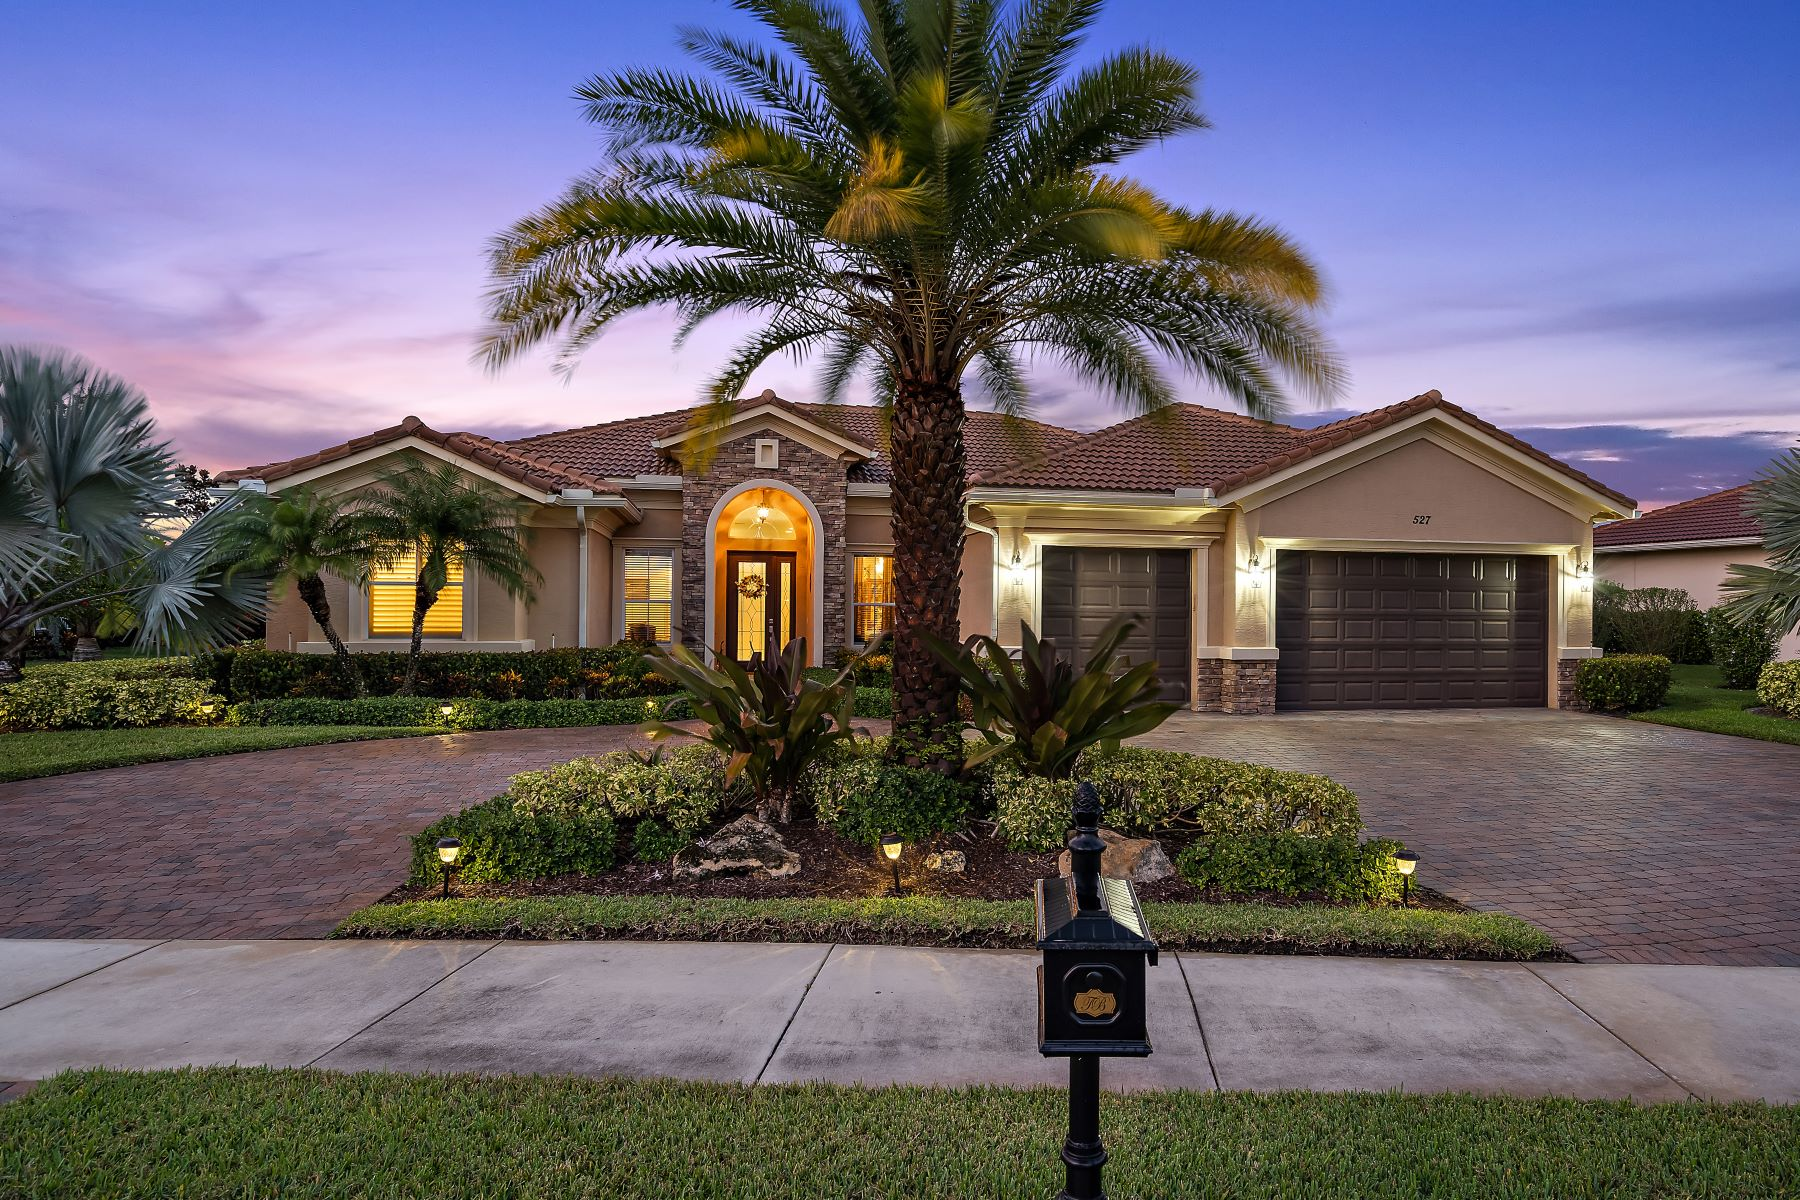 Single Family Homes for Sale at Se 527 Tres Belle Cir Stuart, Florida 34997 United States